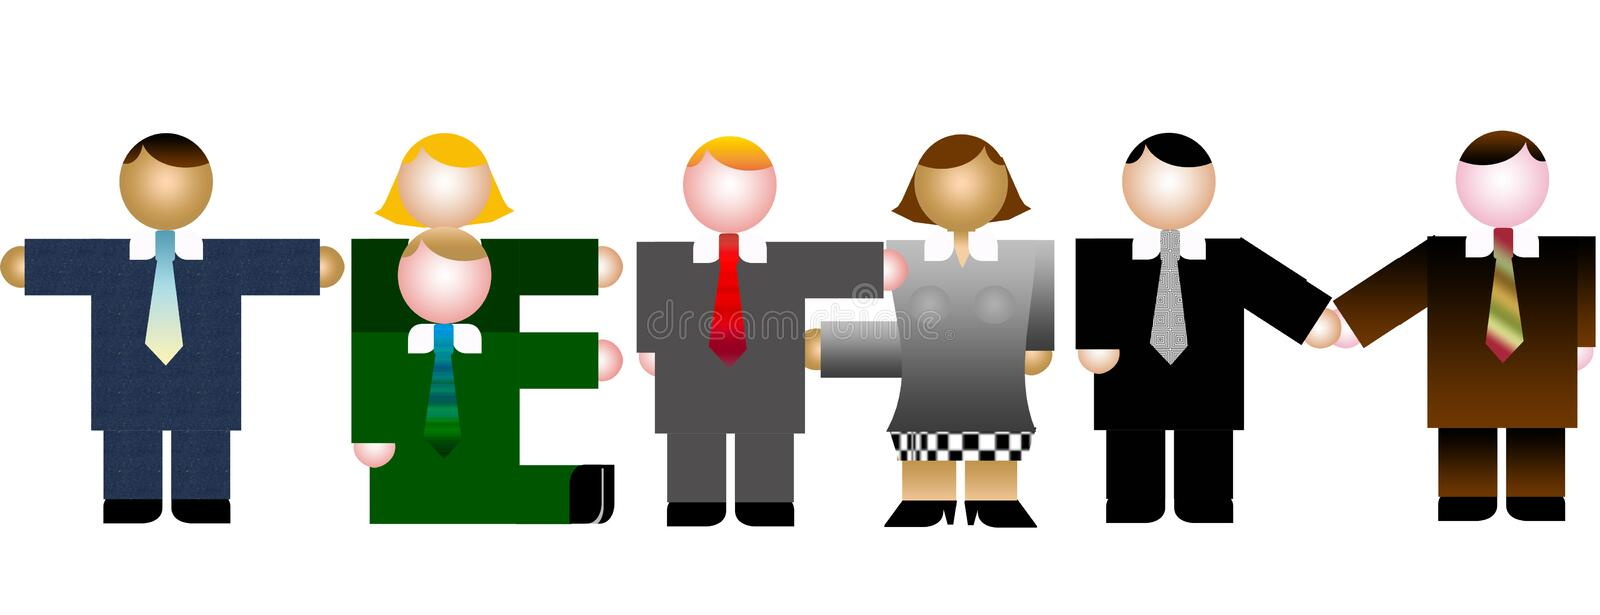 Our team. Simple business people icon style create the word team on white isolated back.Easy to use